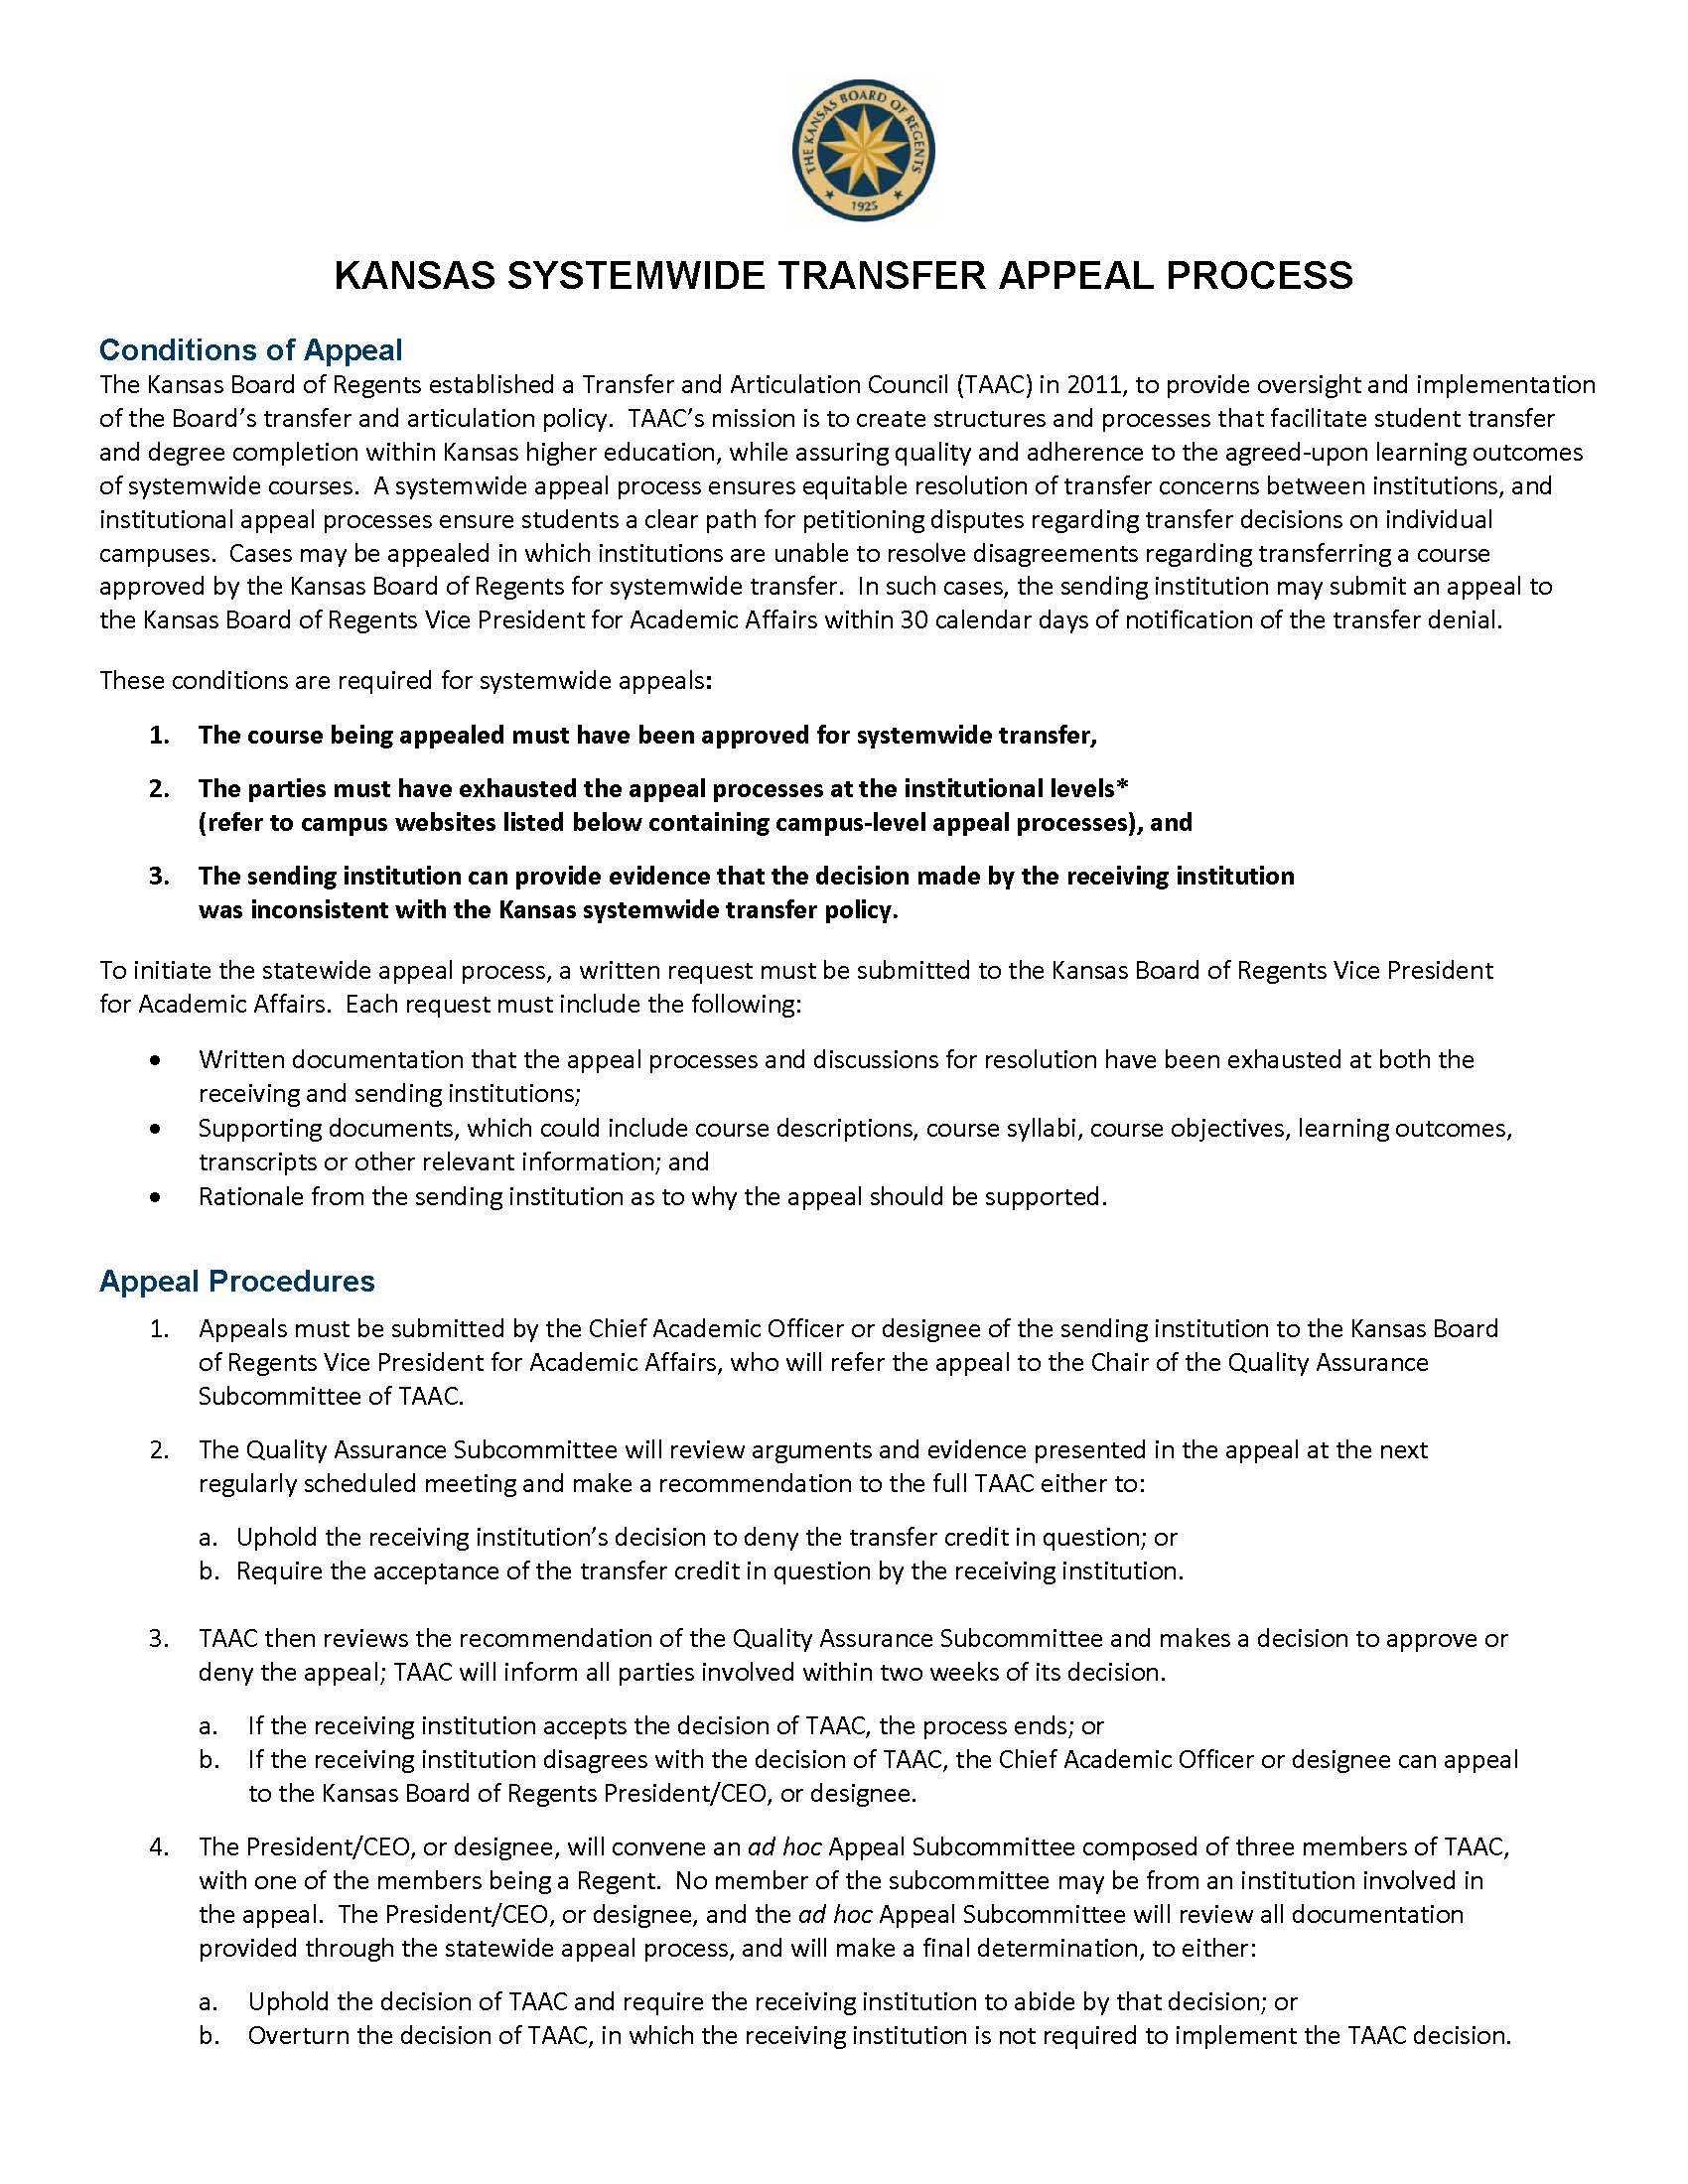 AA TAAC KANSAS SYSTEMWIDE TRANSFER APPEAL PROCESS 11 16